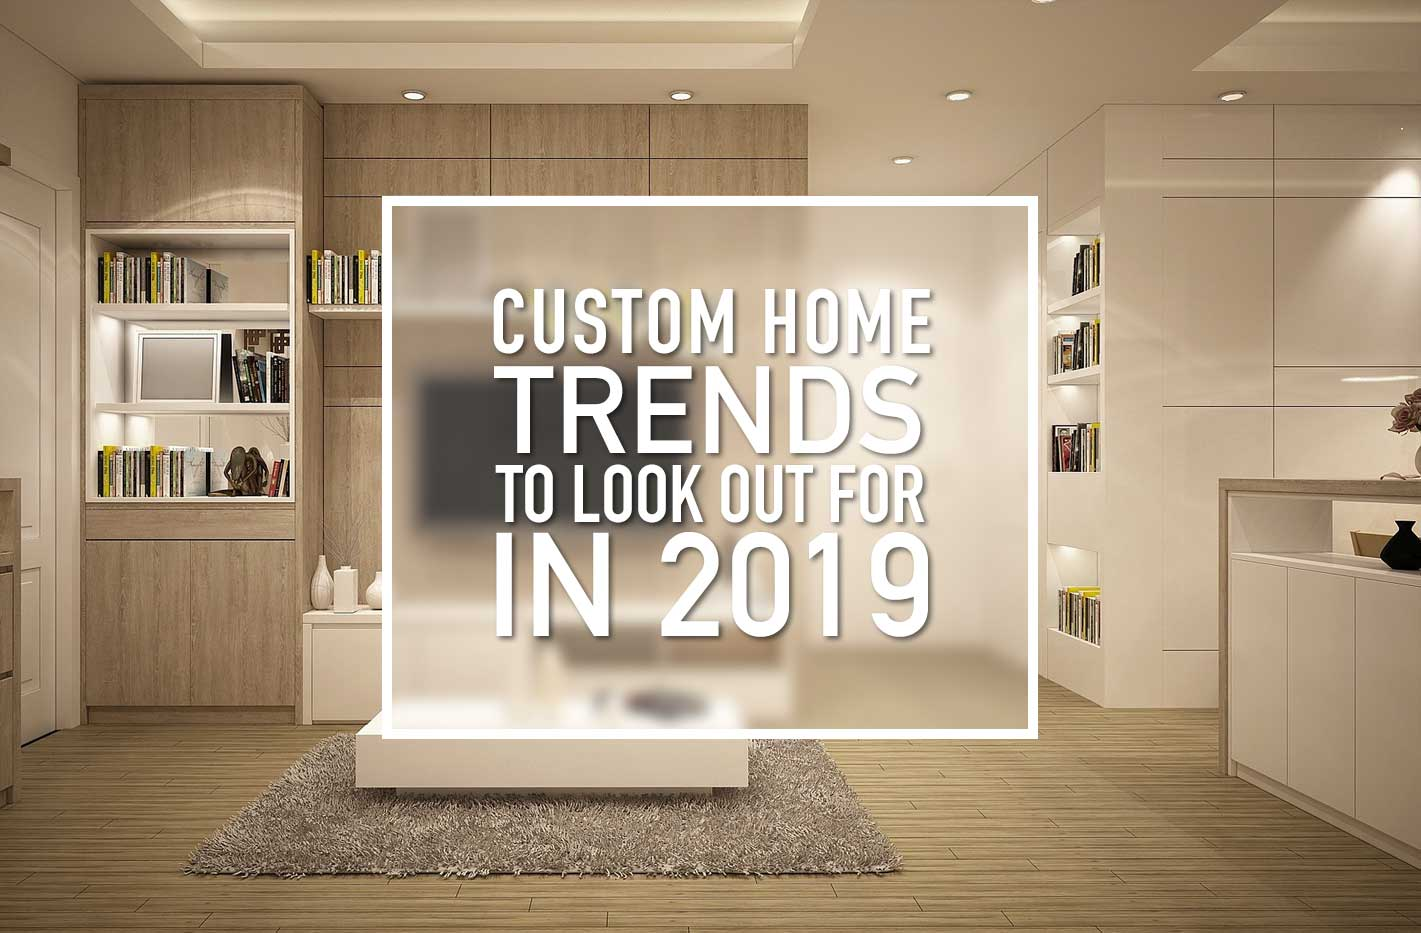 2019 a new year brings with it new custom home trends - Home design trends 2019 ...